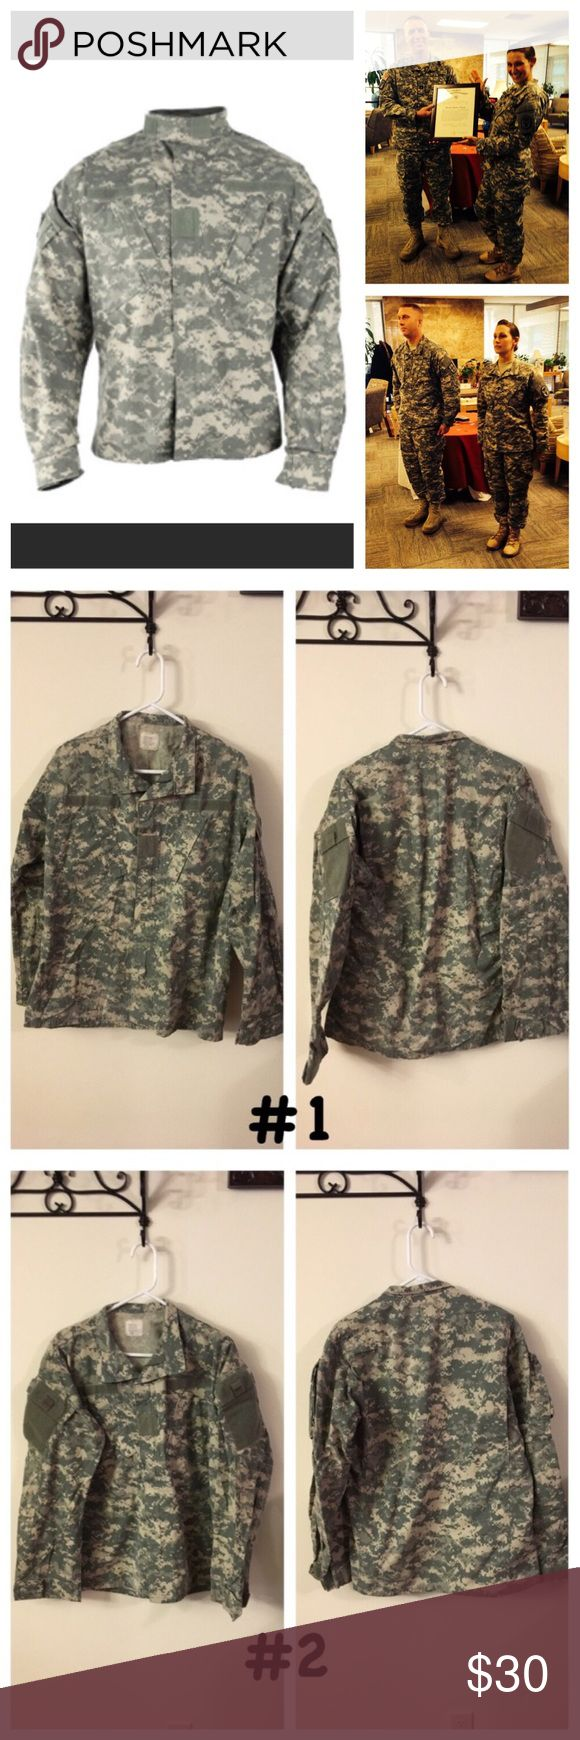 "💥Army Combat Uniform (ACU) Medium-Long: 4 tops ❤Same day shipping (excluding Sun/holidays or orders placed after P.O. Closed)  PRICE FIRM unless bundled. ❤  Price is for 1 top! Size Medium Long Army Combat Uniform Tops. Each photo is front/back of each separate Top. Gender neutral uniforms. For sizes: height 71""-75"" and chest 37""-41"". Normal wear from use: free from holes/stains. Smoke/pet free home. Some of the labels have writing. My husband had a system to keep tops/bottoms together…"